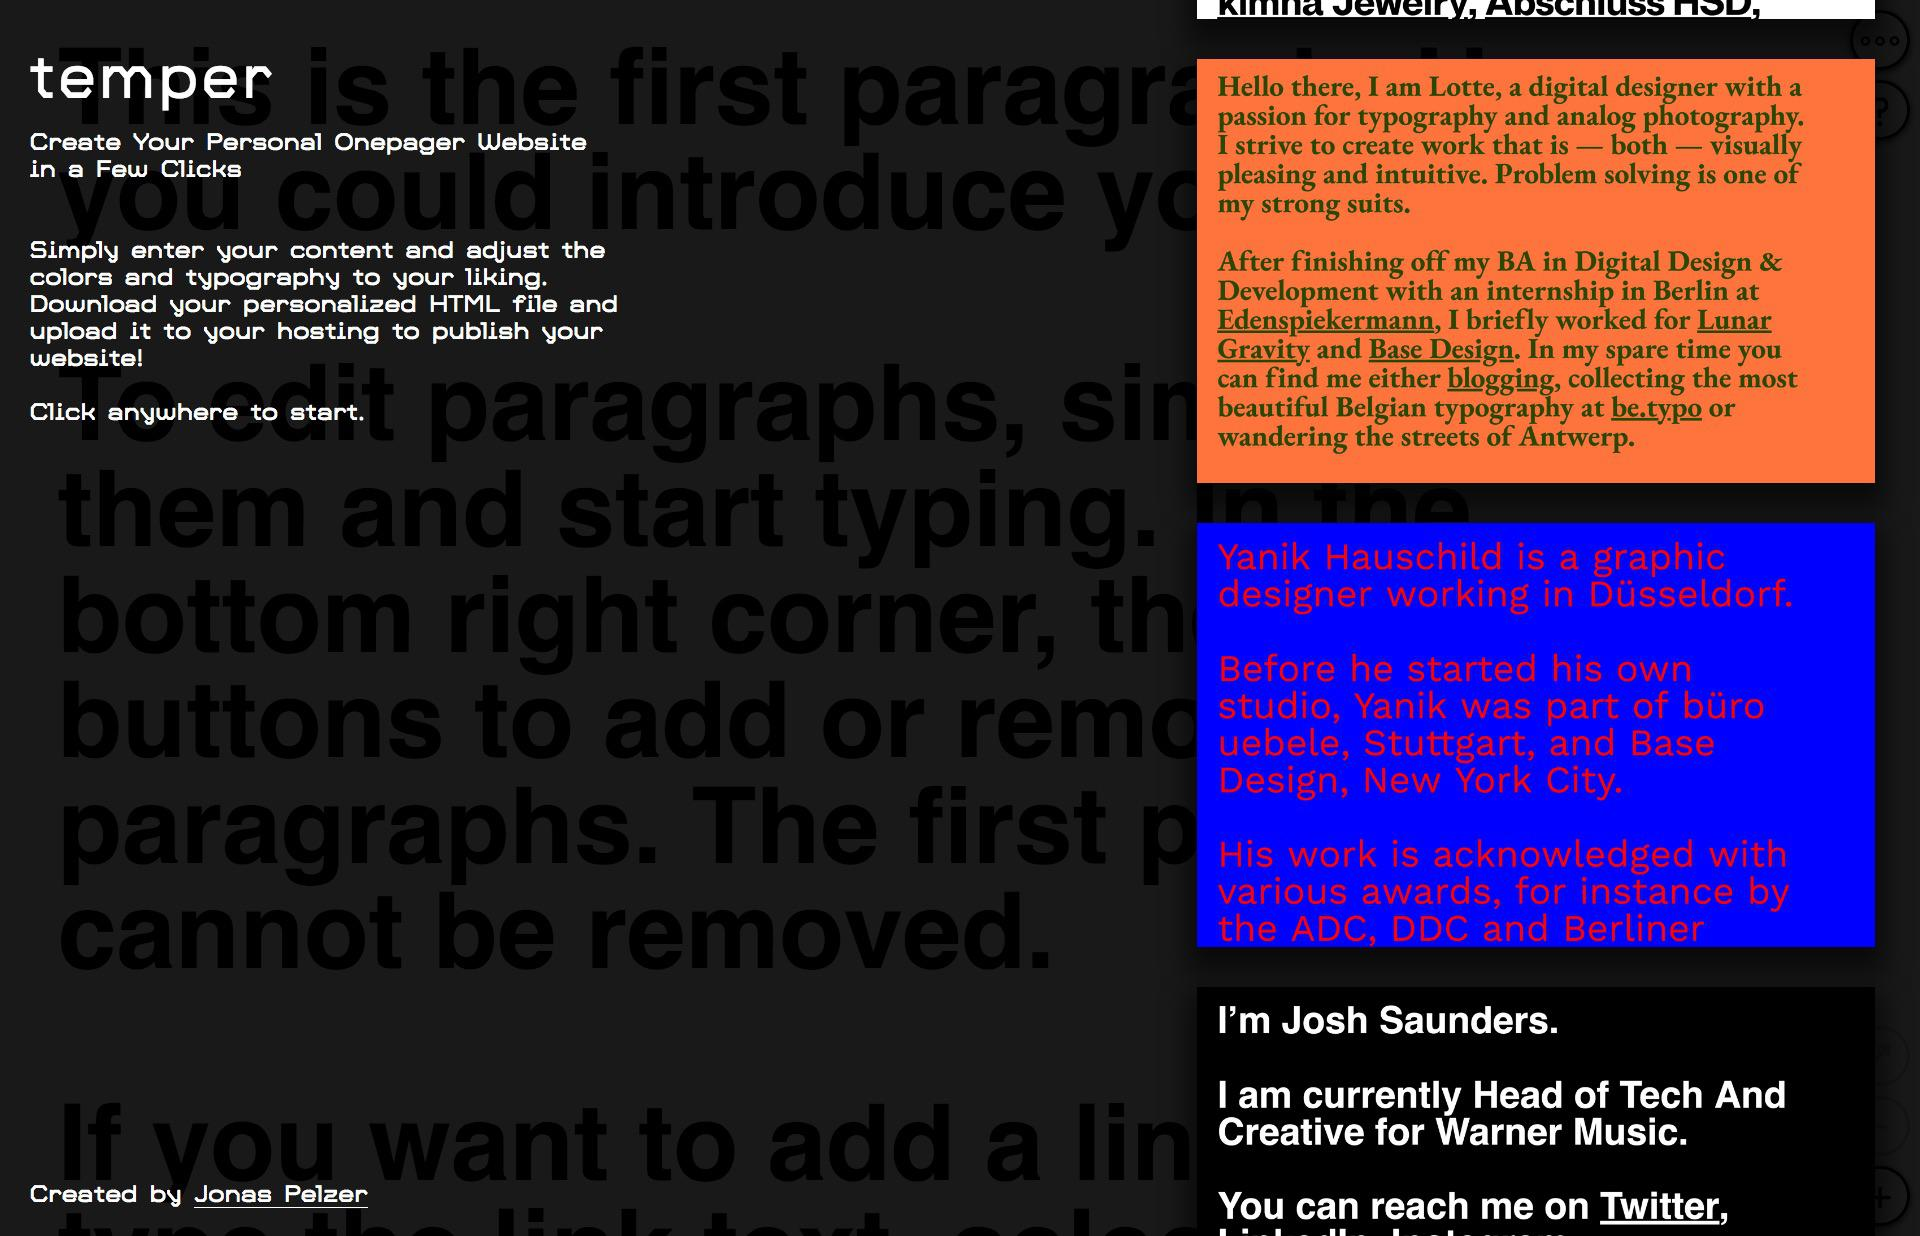 Screenshot of the website Temper, featured on The Gallery, a curated collection of minimal websites